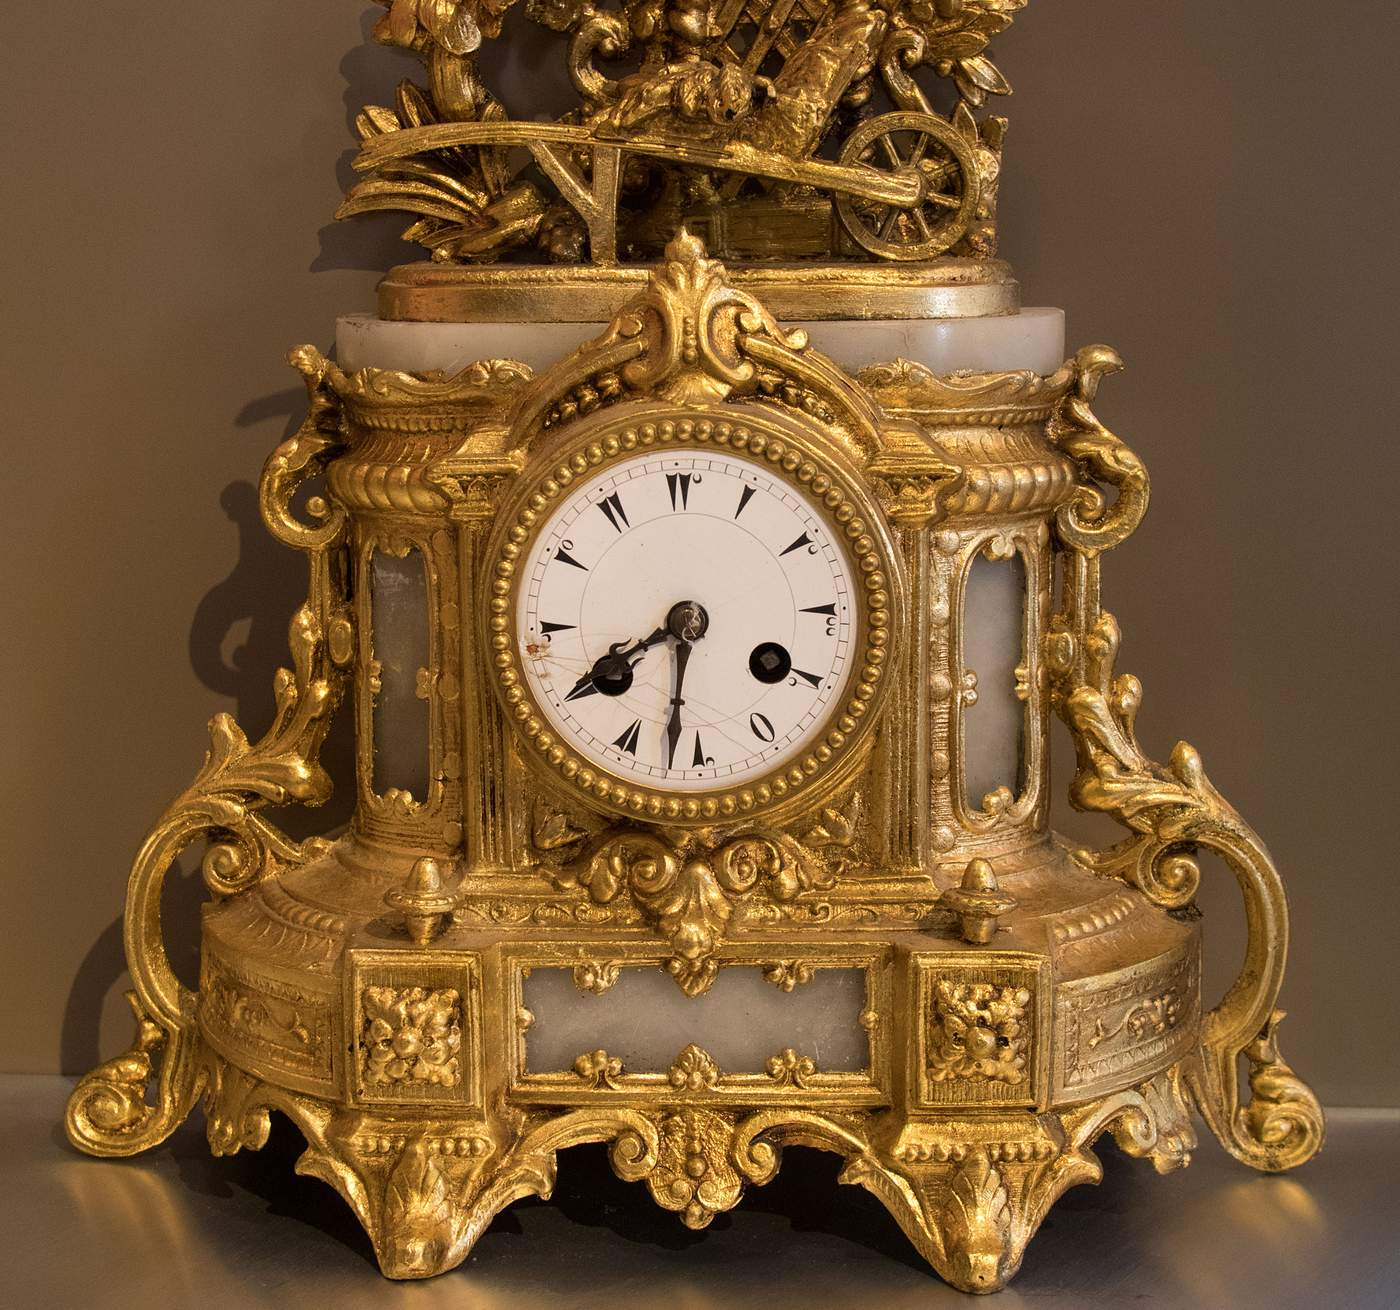 "2.    Antique clock, bronze with gold leaf, estimated 19th century ""Growing up, I loved spending time with my grandpa and grandma, and I always admired this clock in their dining room,"" Mr. Bahadir said. ""My grandma told me one day when I decorate my own place she would give it to me. When I moved to New York she finally gave it to me."""